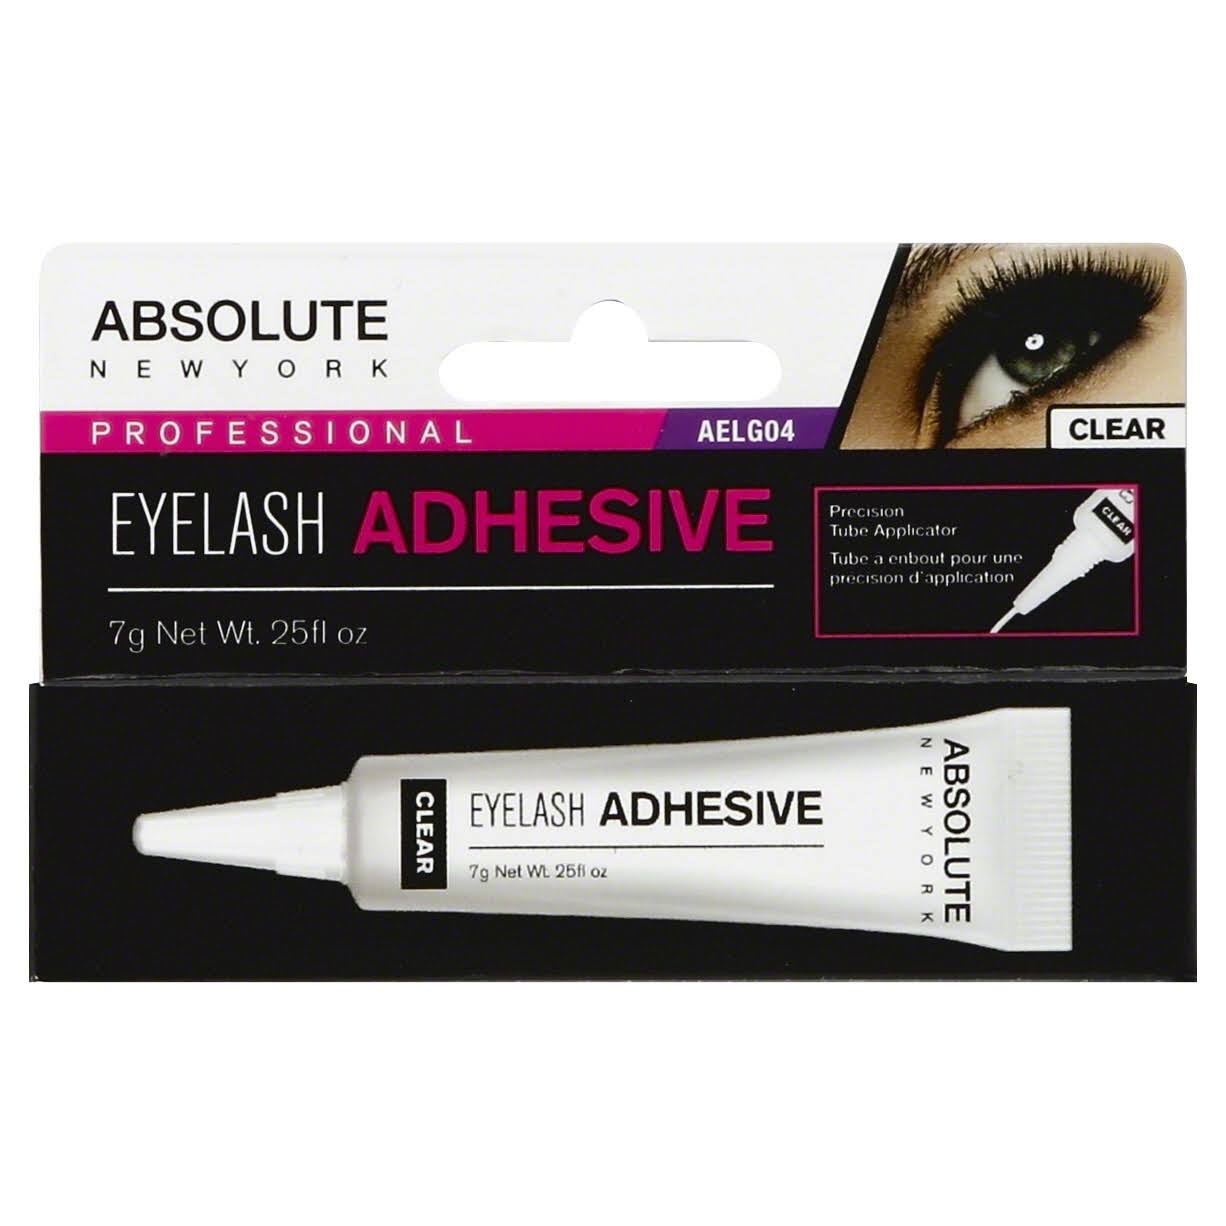 Absolute New York Adhesive Lash Glue - Clear, 7g